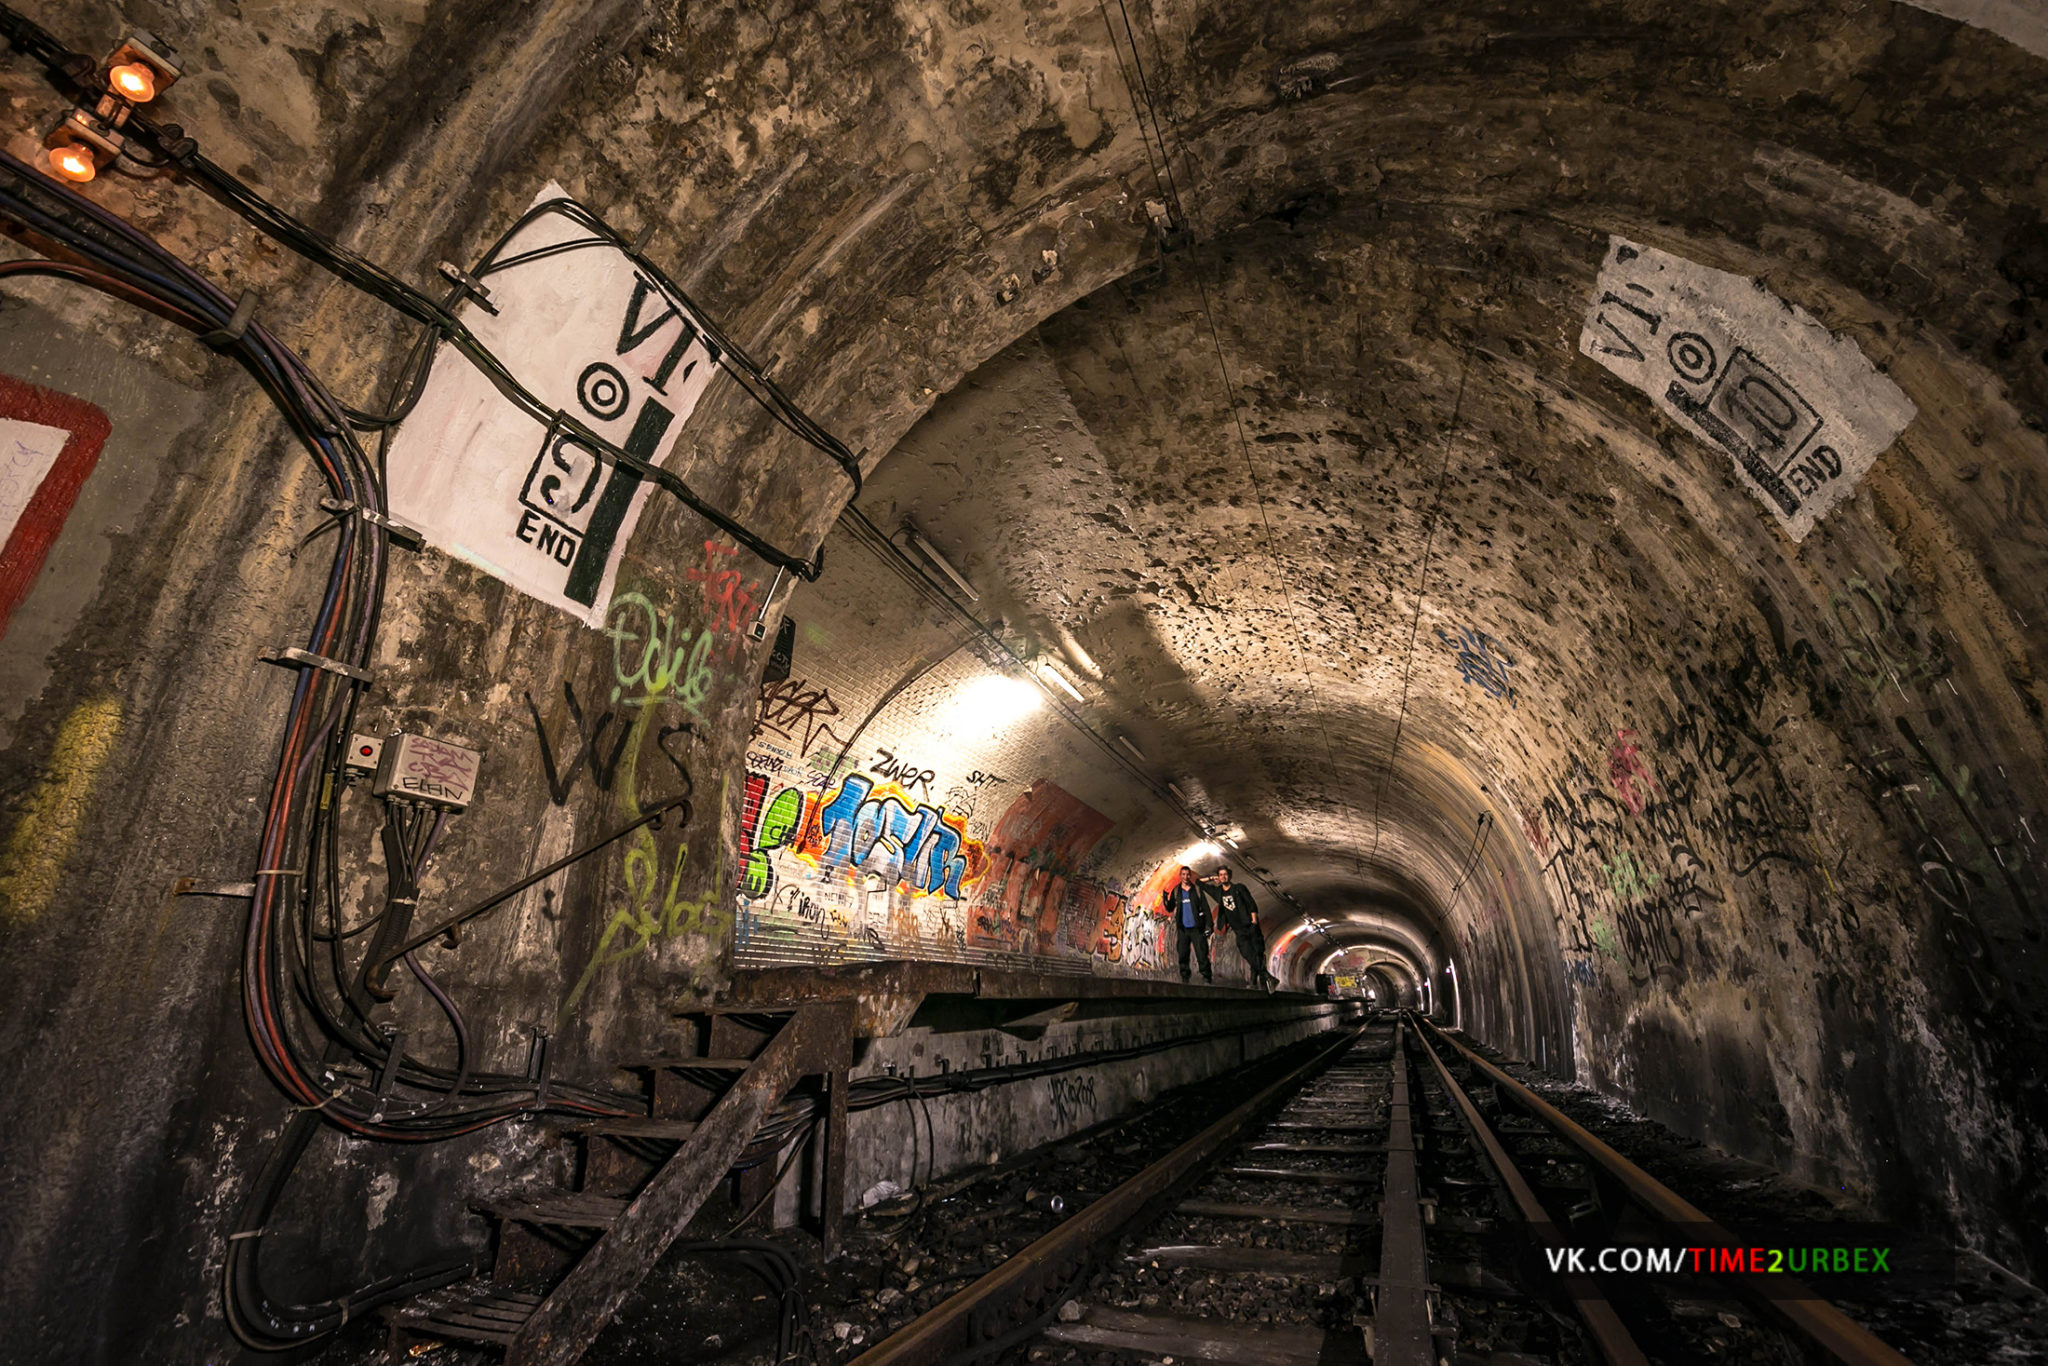 58 7 GHOST STATIONS OF THE PARIS METRO AND HOW TO GET INTO THE ILLEGALLY + UNUSUAL TUNNELS + RER